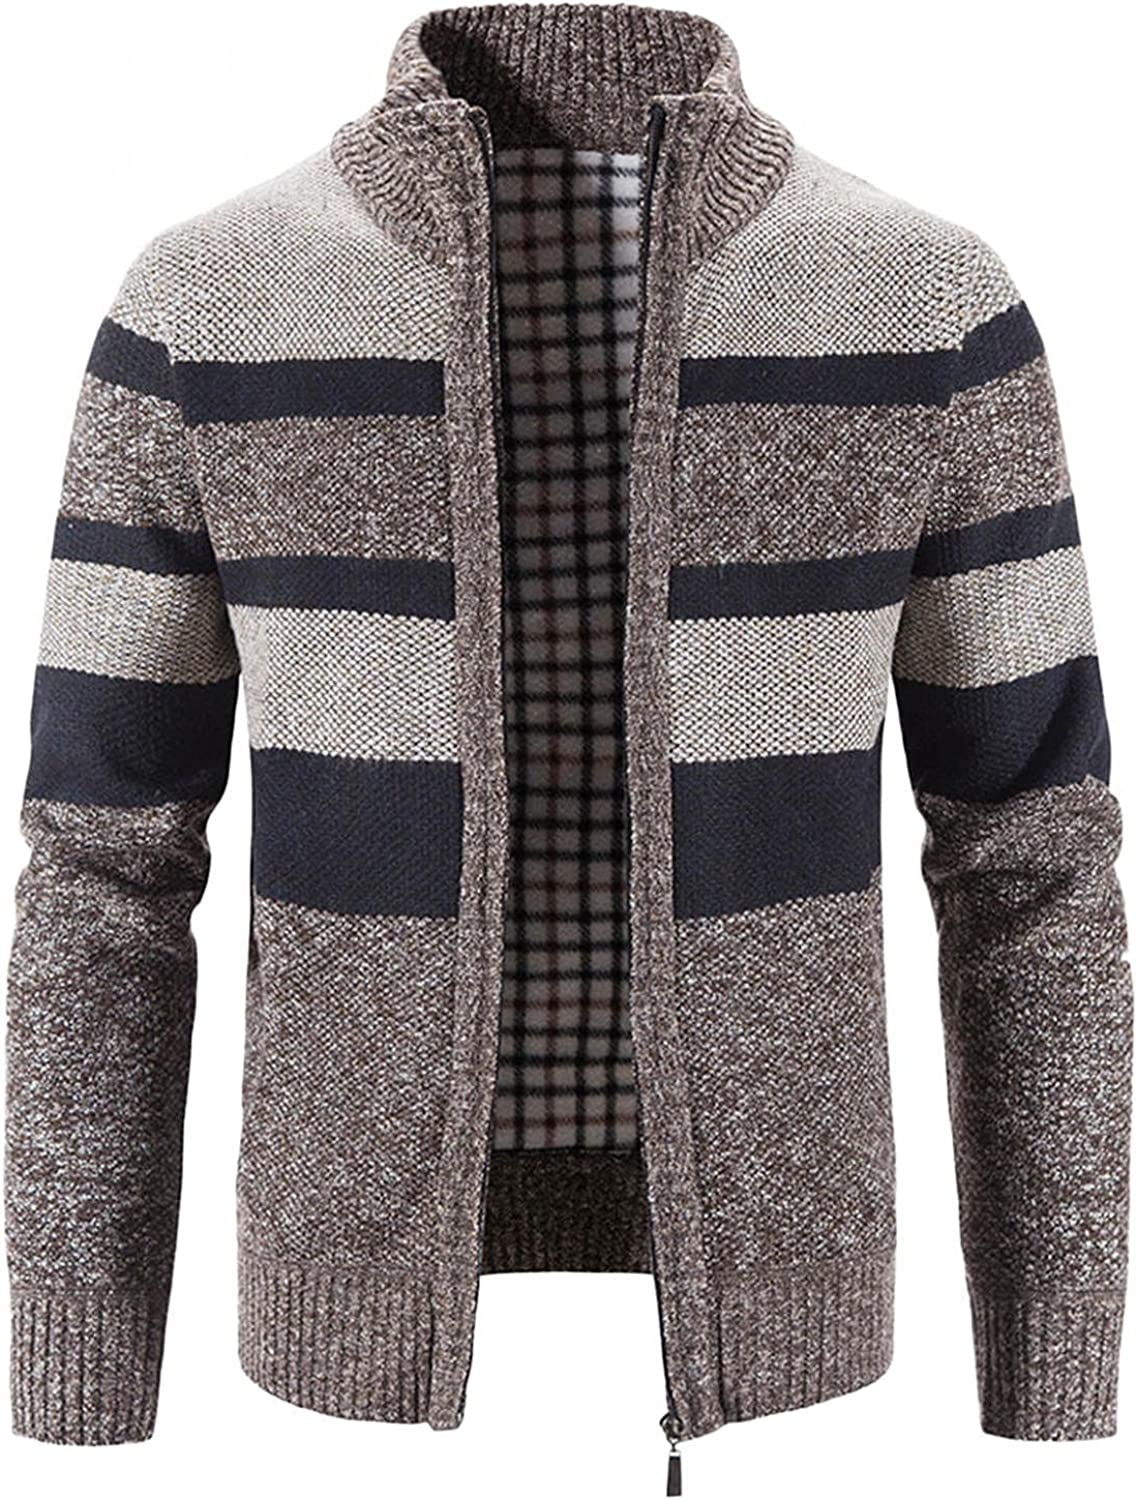 Mens Fixed price for sale Sweaters Jacket Casual Full Zip Fit New life Knitted Slim C Cardigan